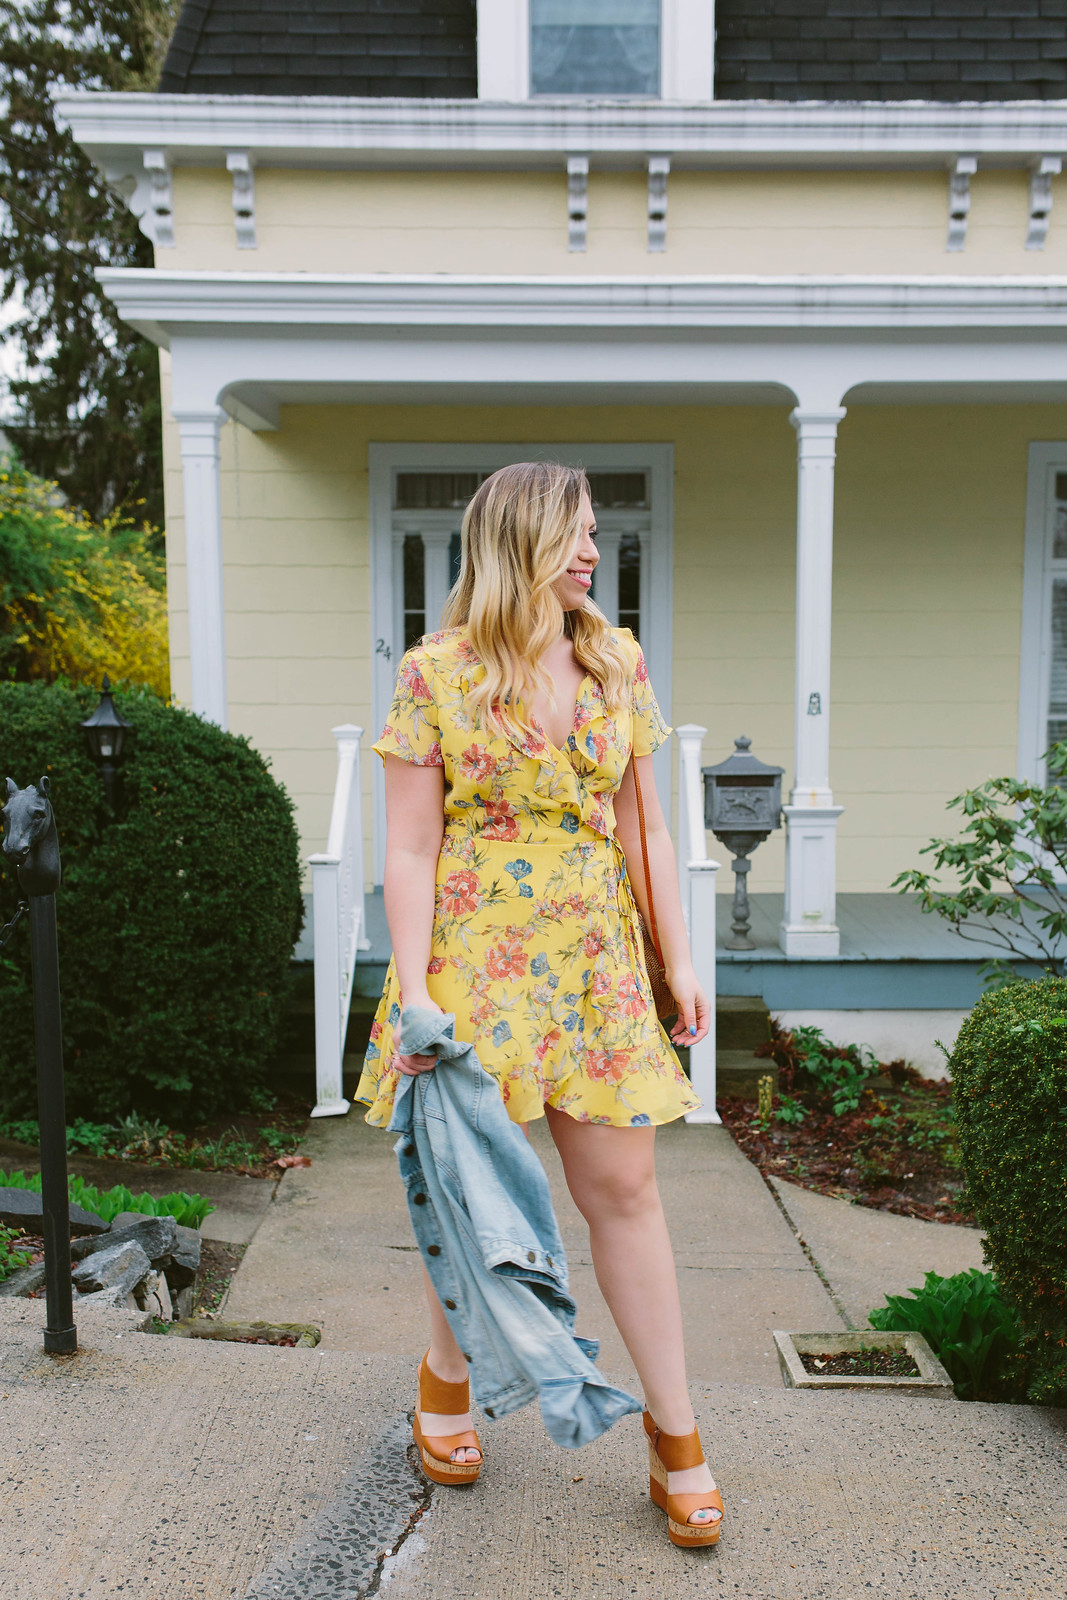 Nordstrom Lush Yellow Ruffle Wrap Dress Blonde Hair Gap Jean Jacket Tan Wedges Sandals Spring Summer Outfit Inspiration Jackie Giardina Living After Midnite